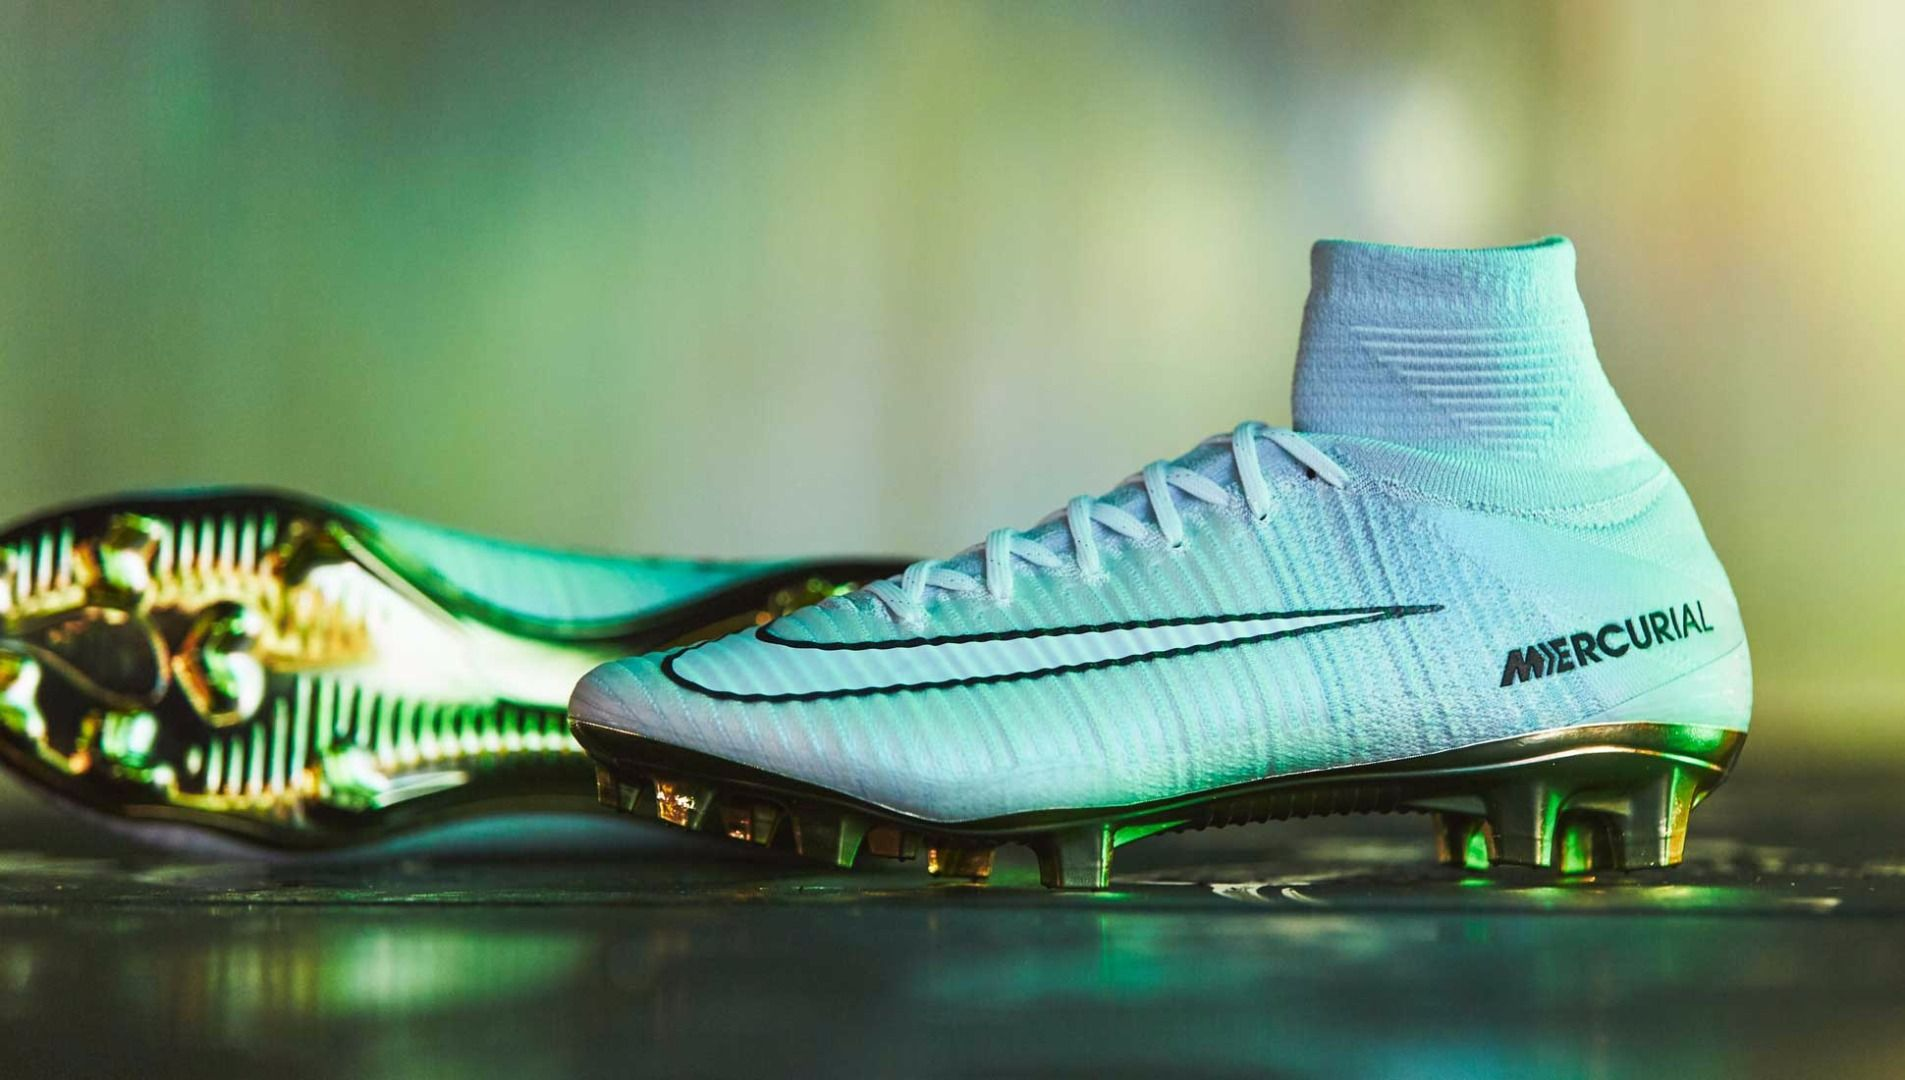 6b28bb517c0 Closer Look at the Nike Mercurial Superfly CR7 Vitórias | boots ...